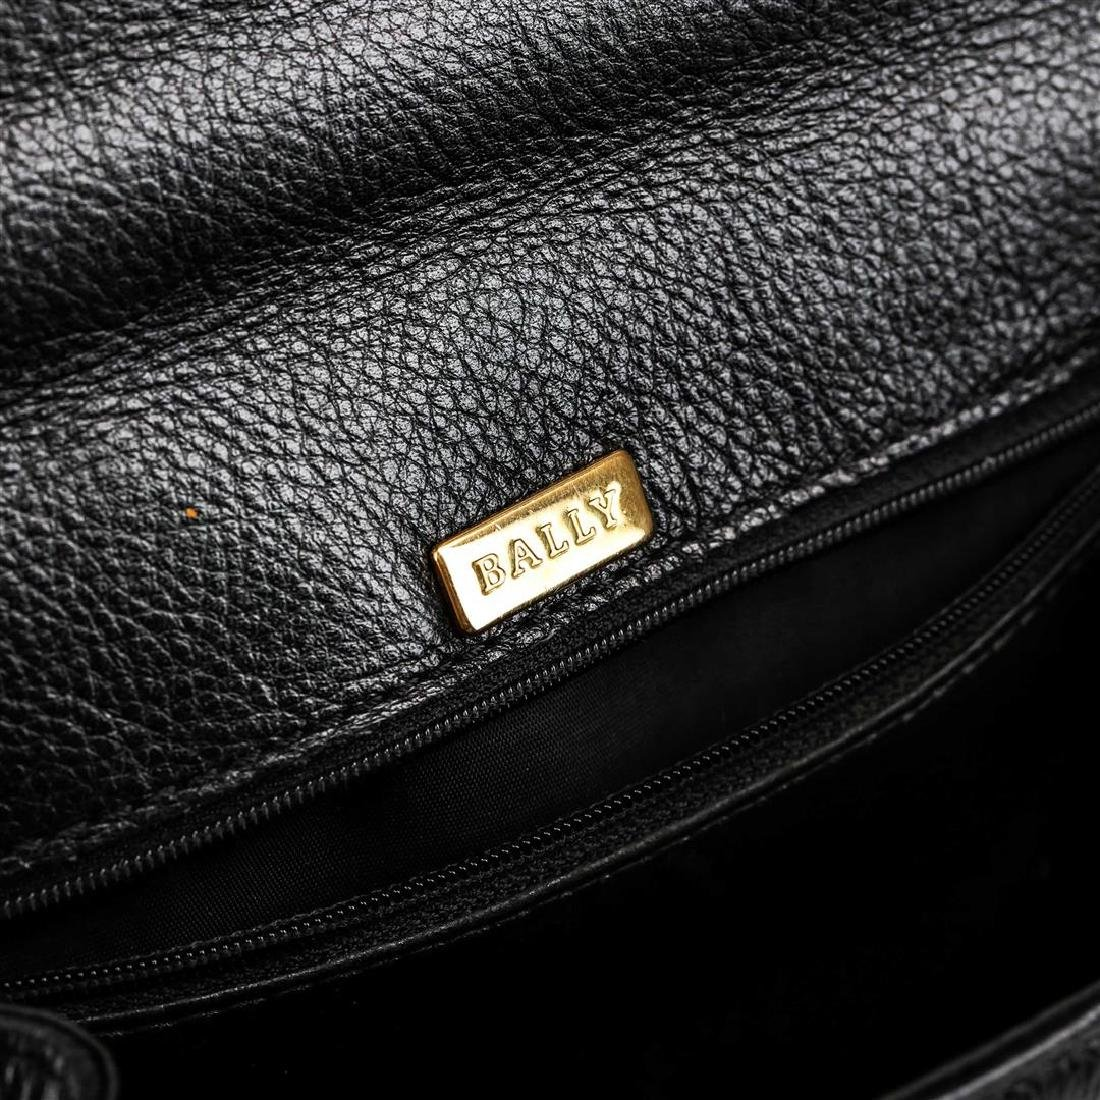 Bally Black Leather Handbag - 4